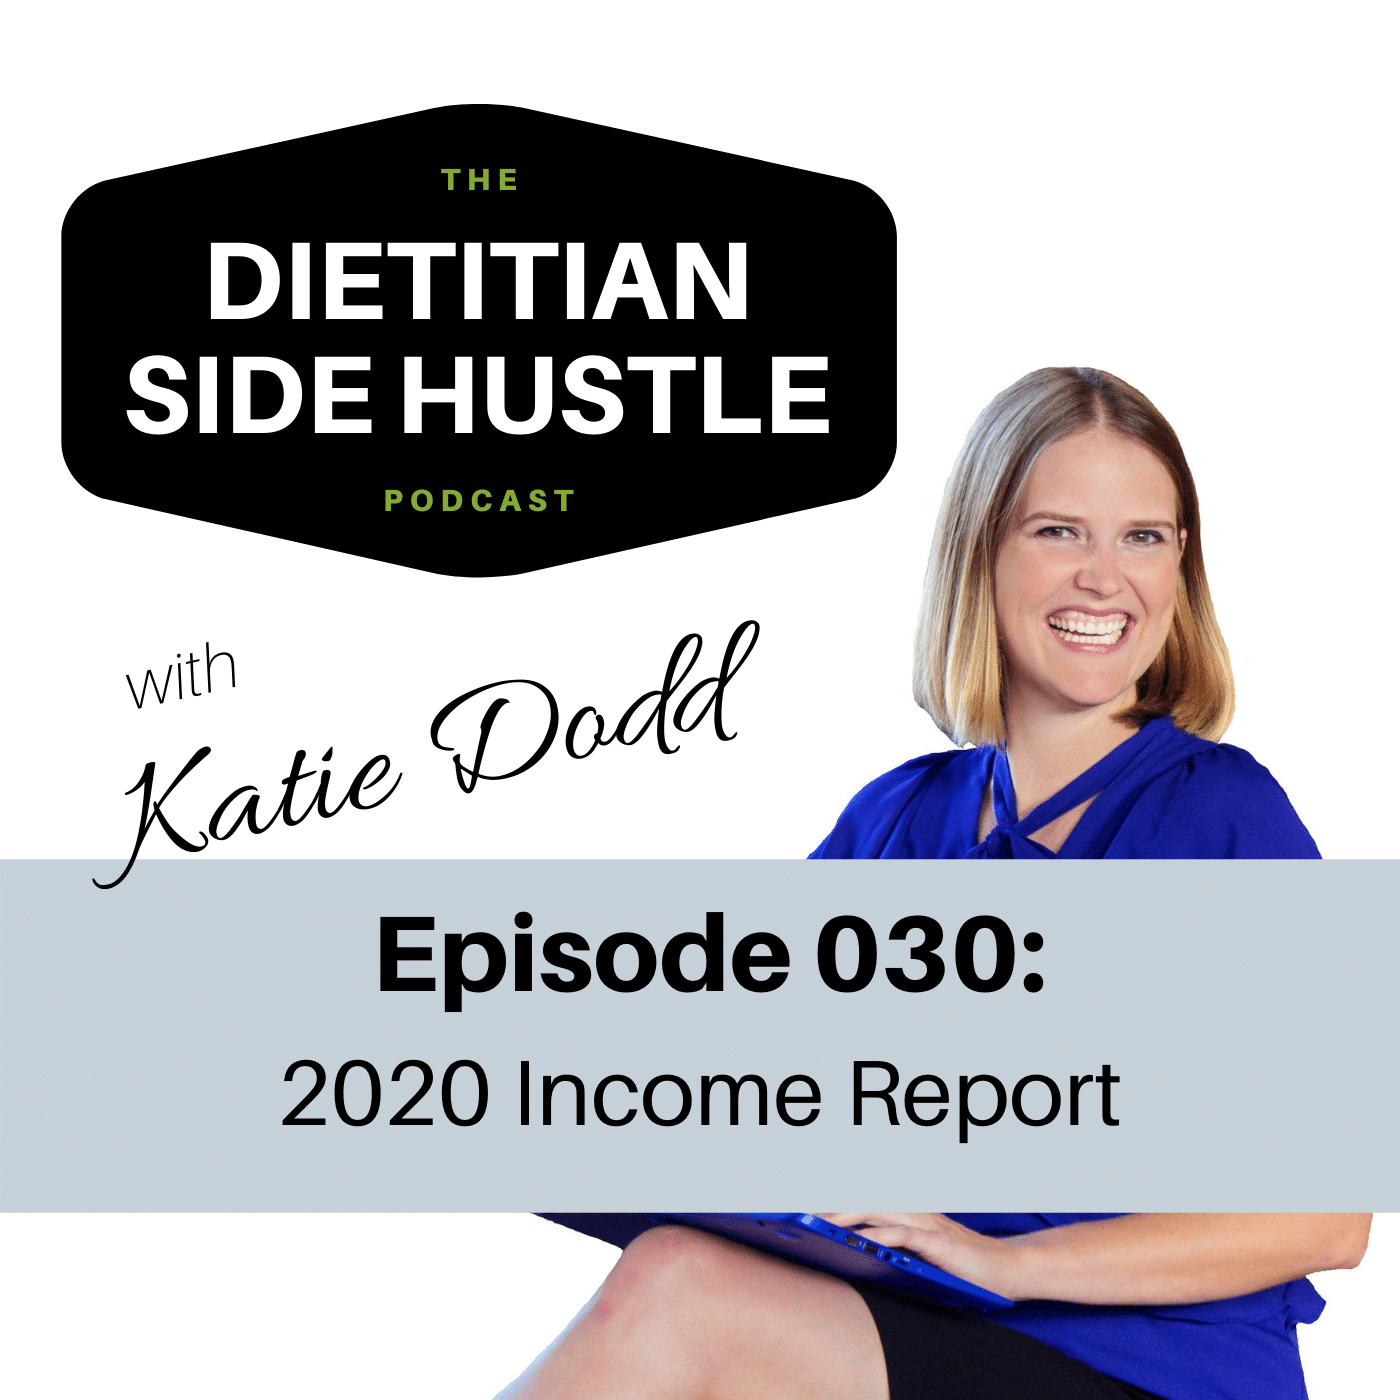 DSH 030: 2020 Income Report